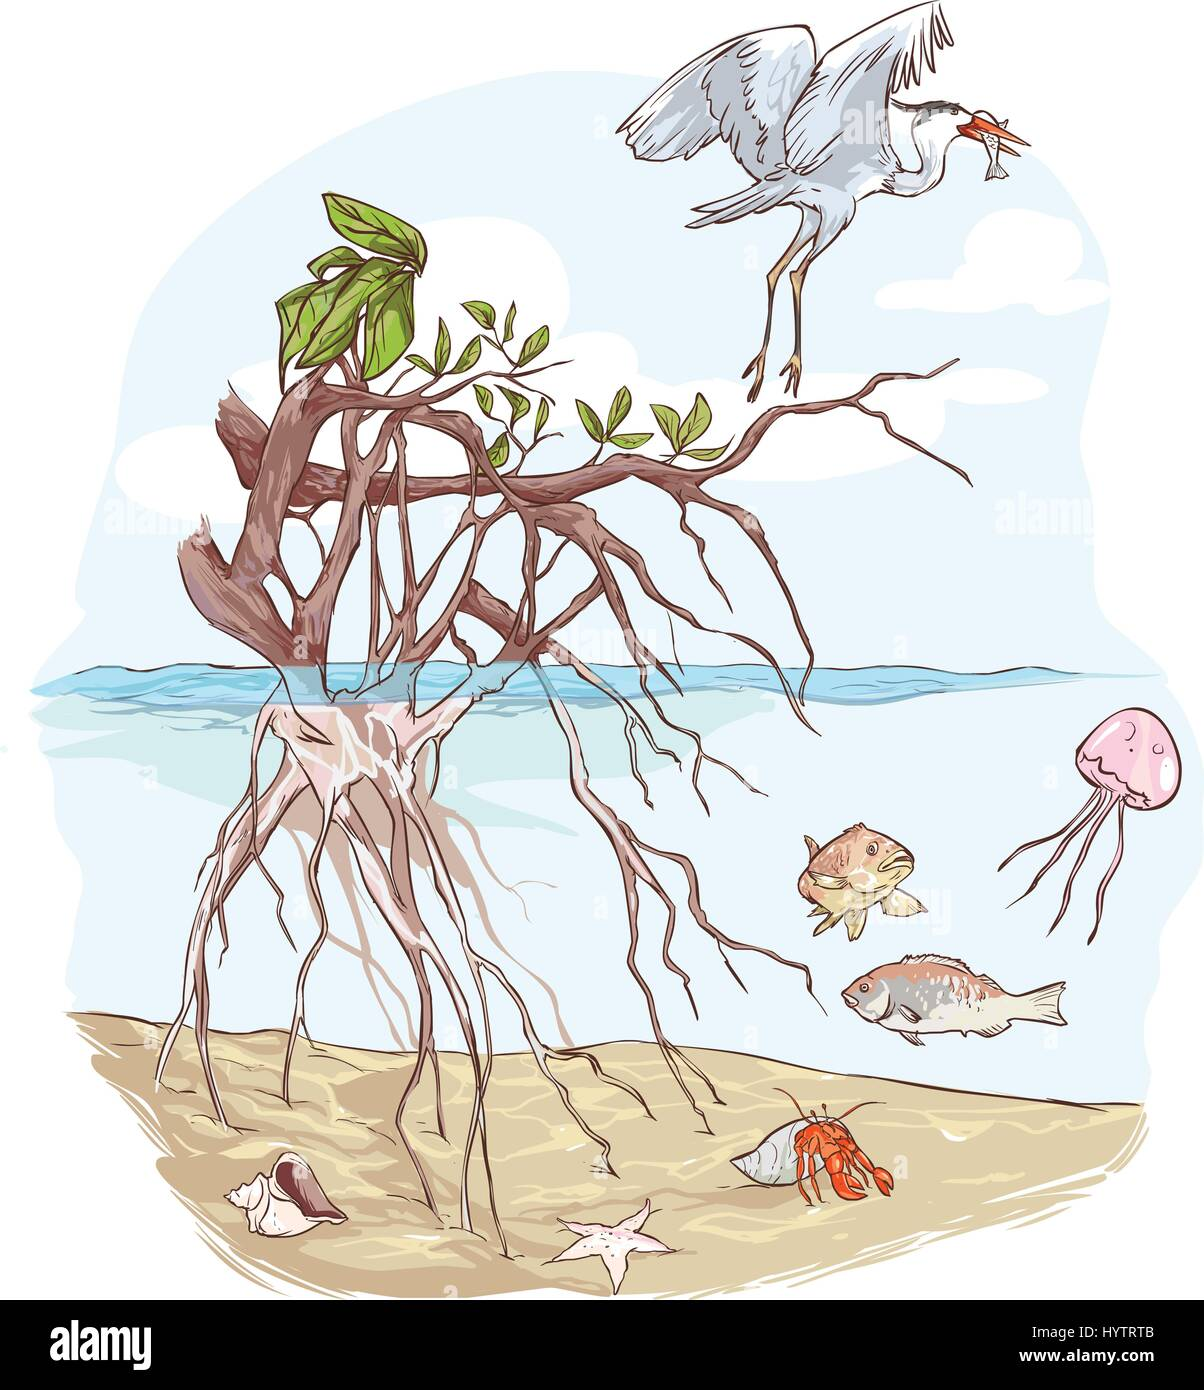 vector illustration of a Marine Ecosystem - Stock Vector